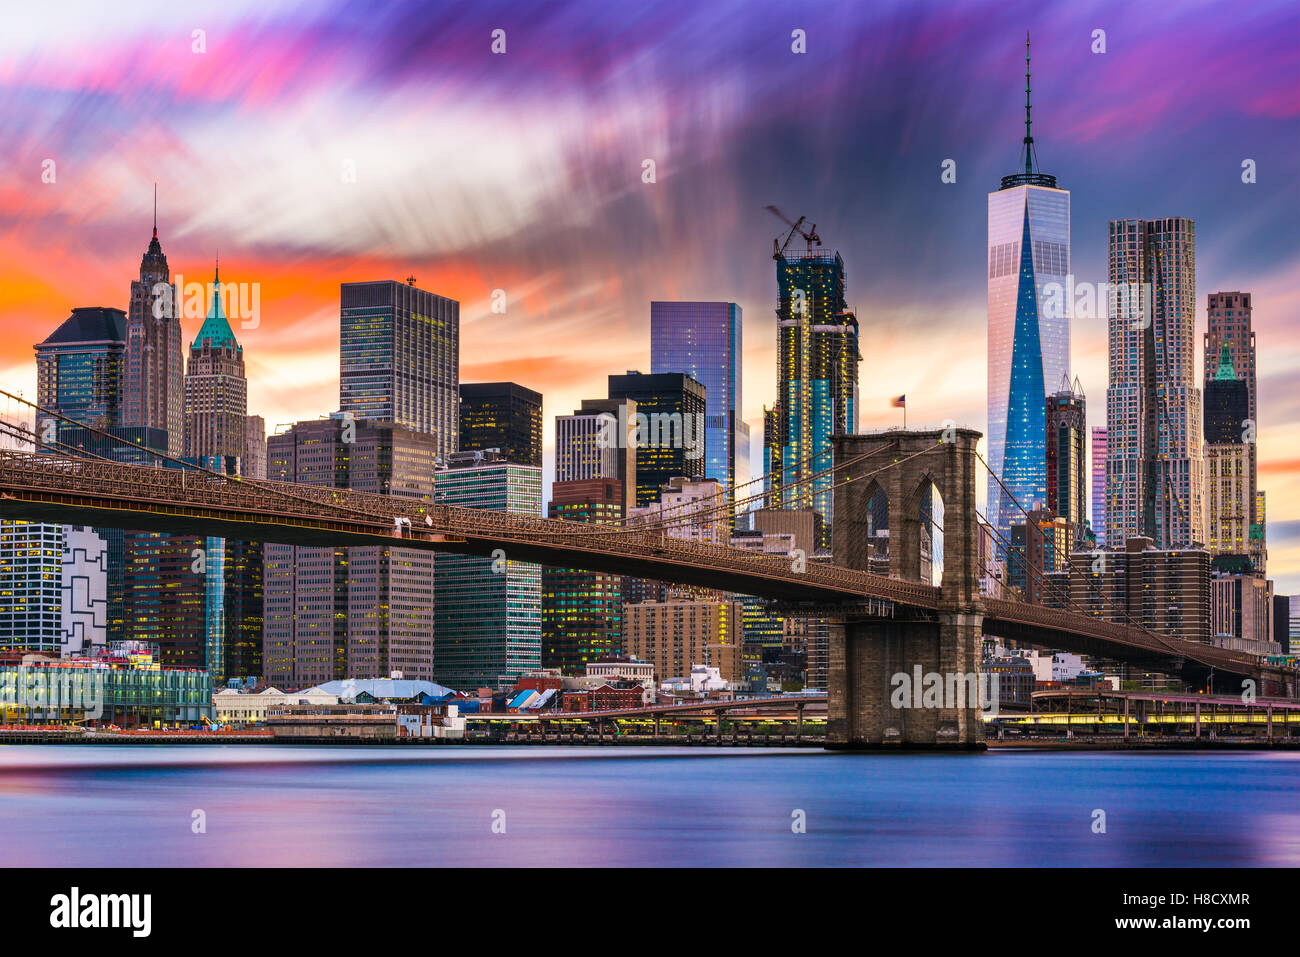 New York City skyline with the Brooklyn Bridge and Financial district on the East River. - Stock Image